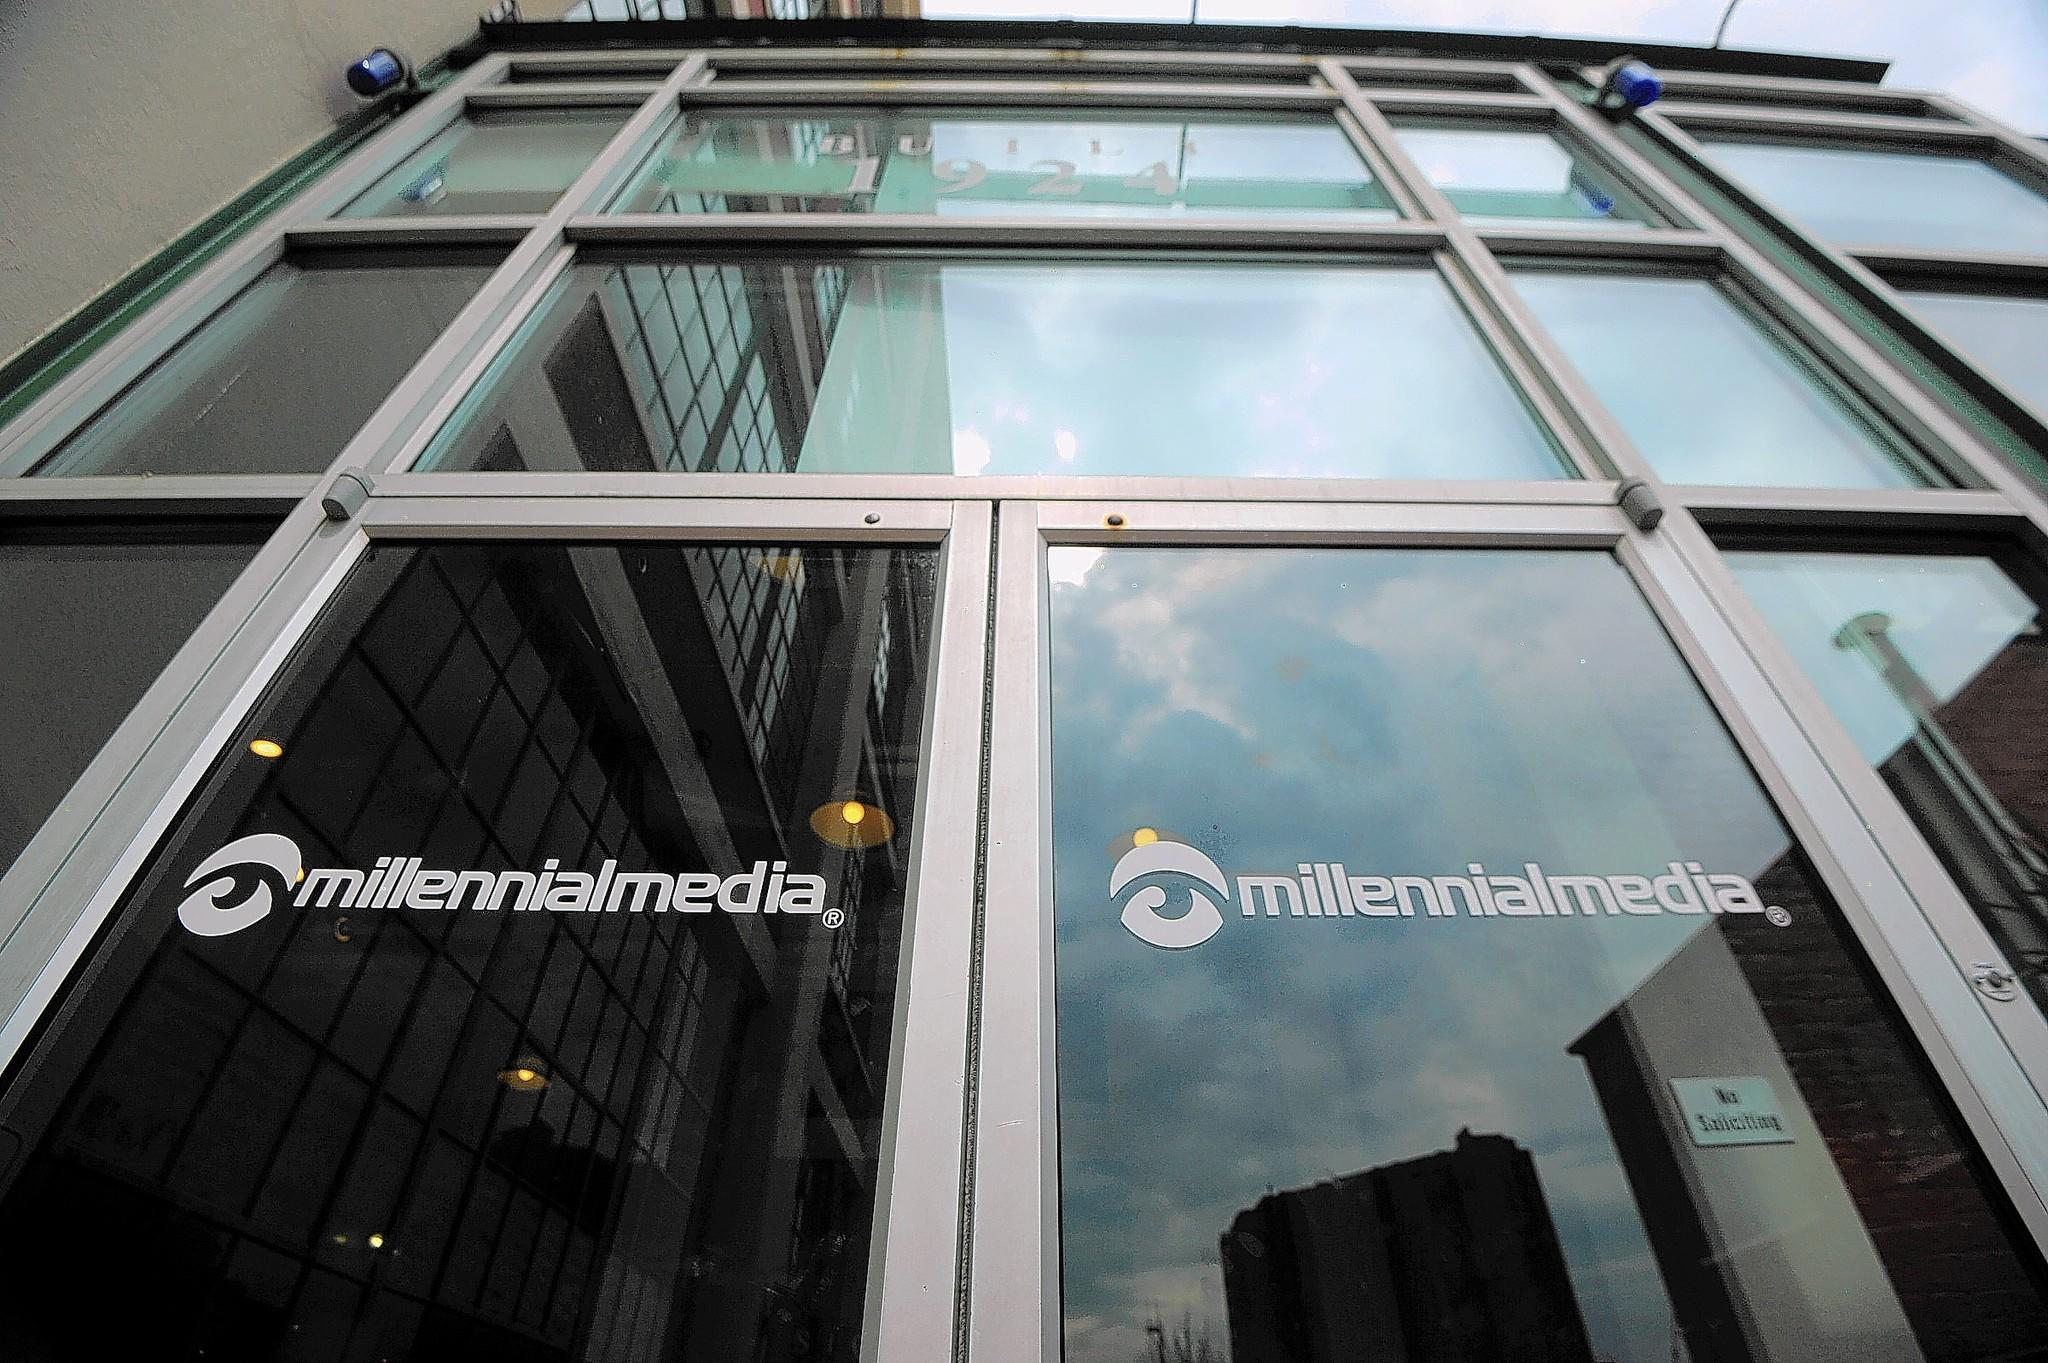 Millennial Media took over the Can Company on Boston Street as it expands its headquarters.